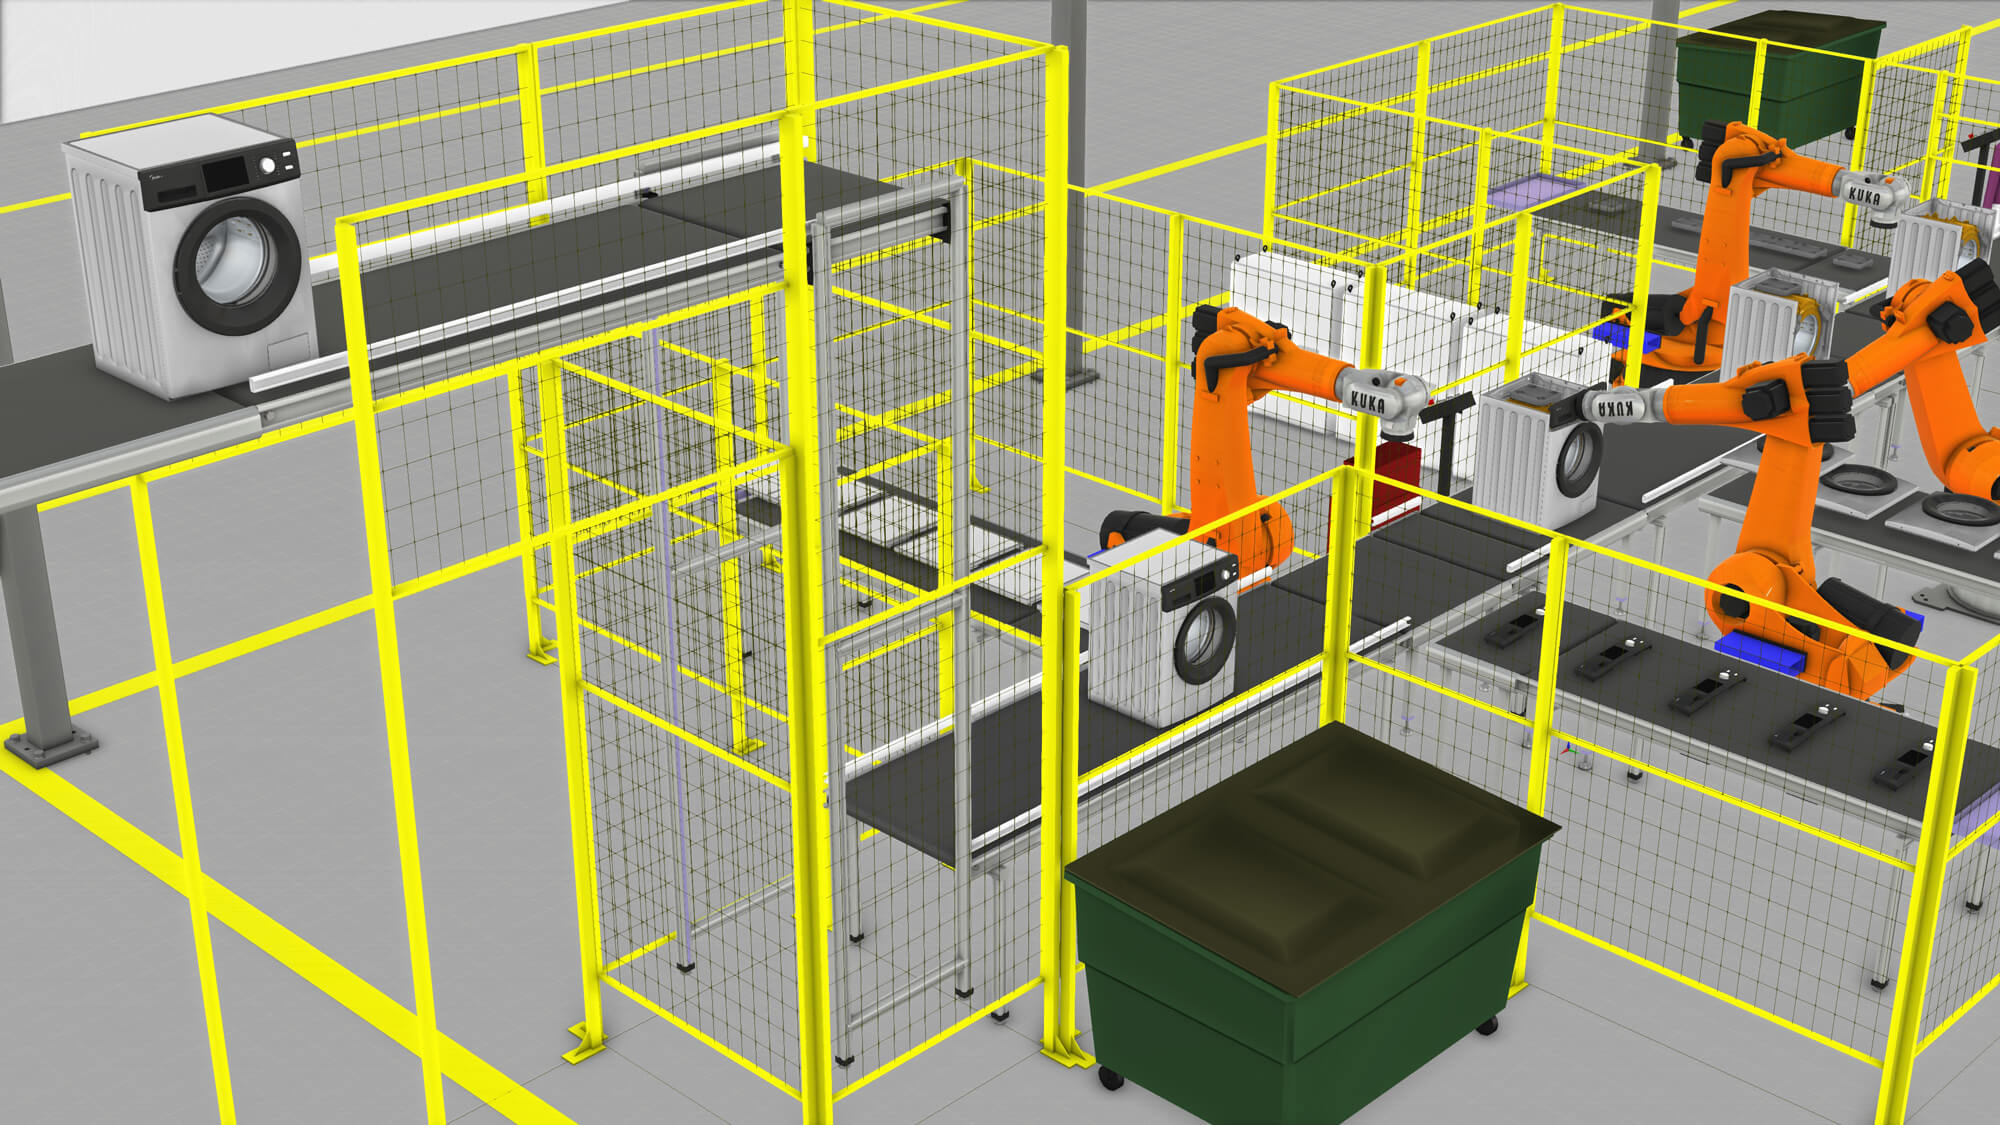 Simulation of a Midea washing machine assembly line